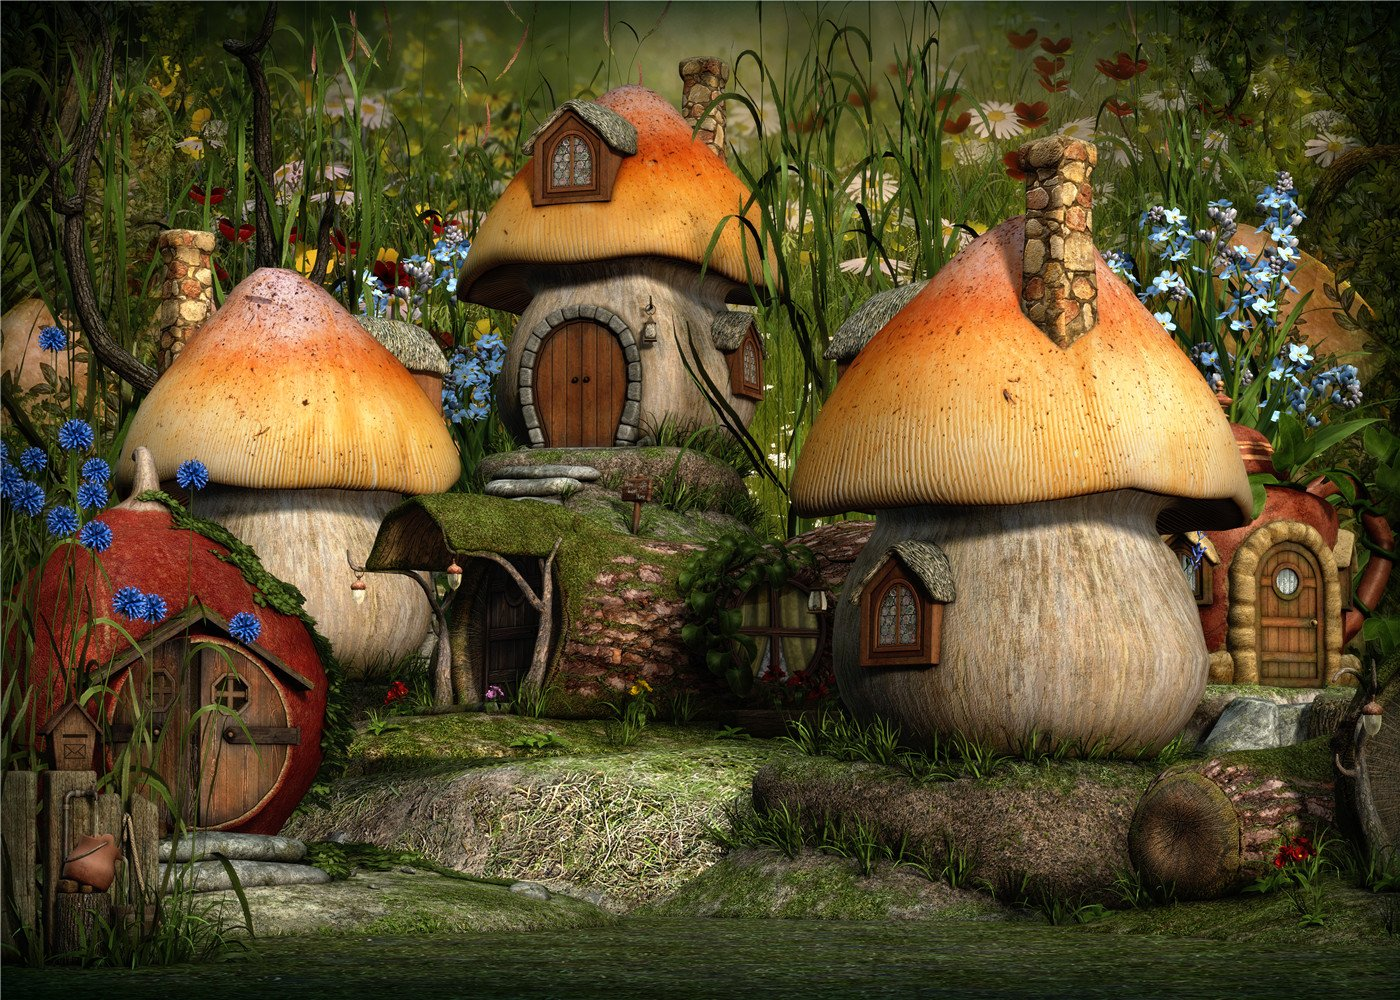 Katebackdrop:Kate Mushroom Fantasy Forest  Backdrop for Children Photography